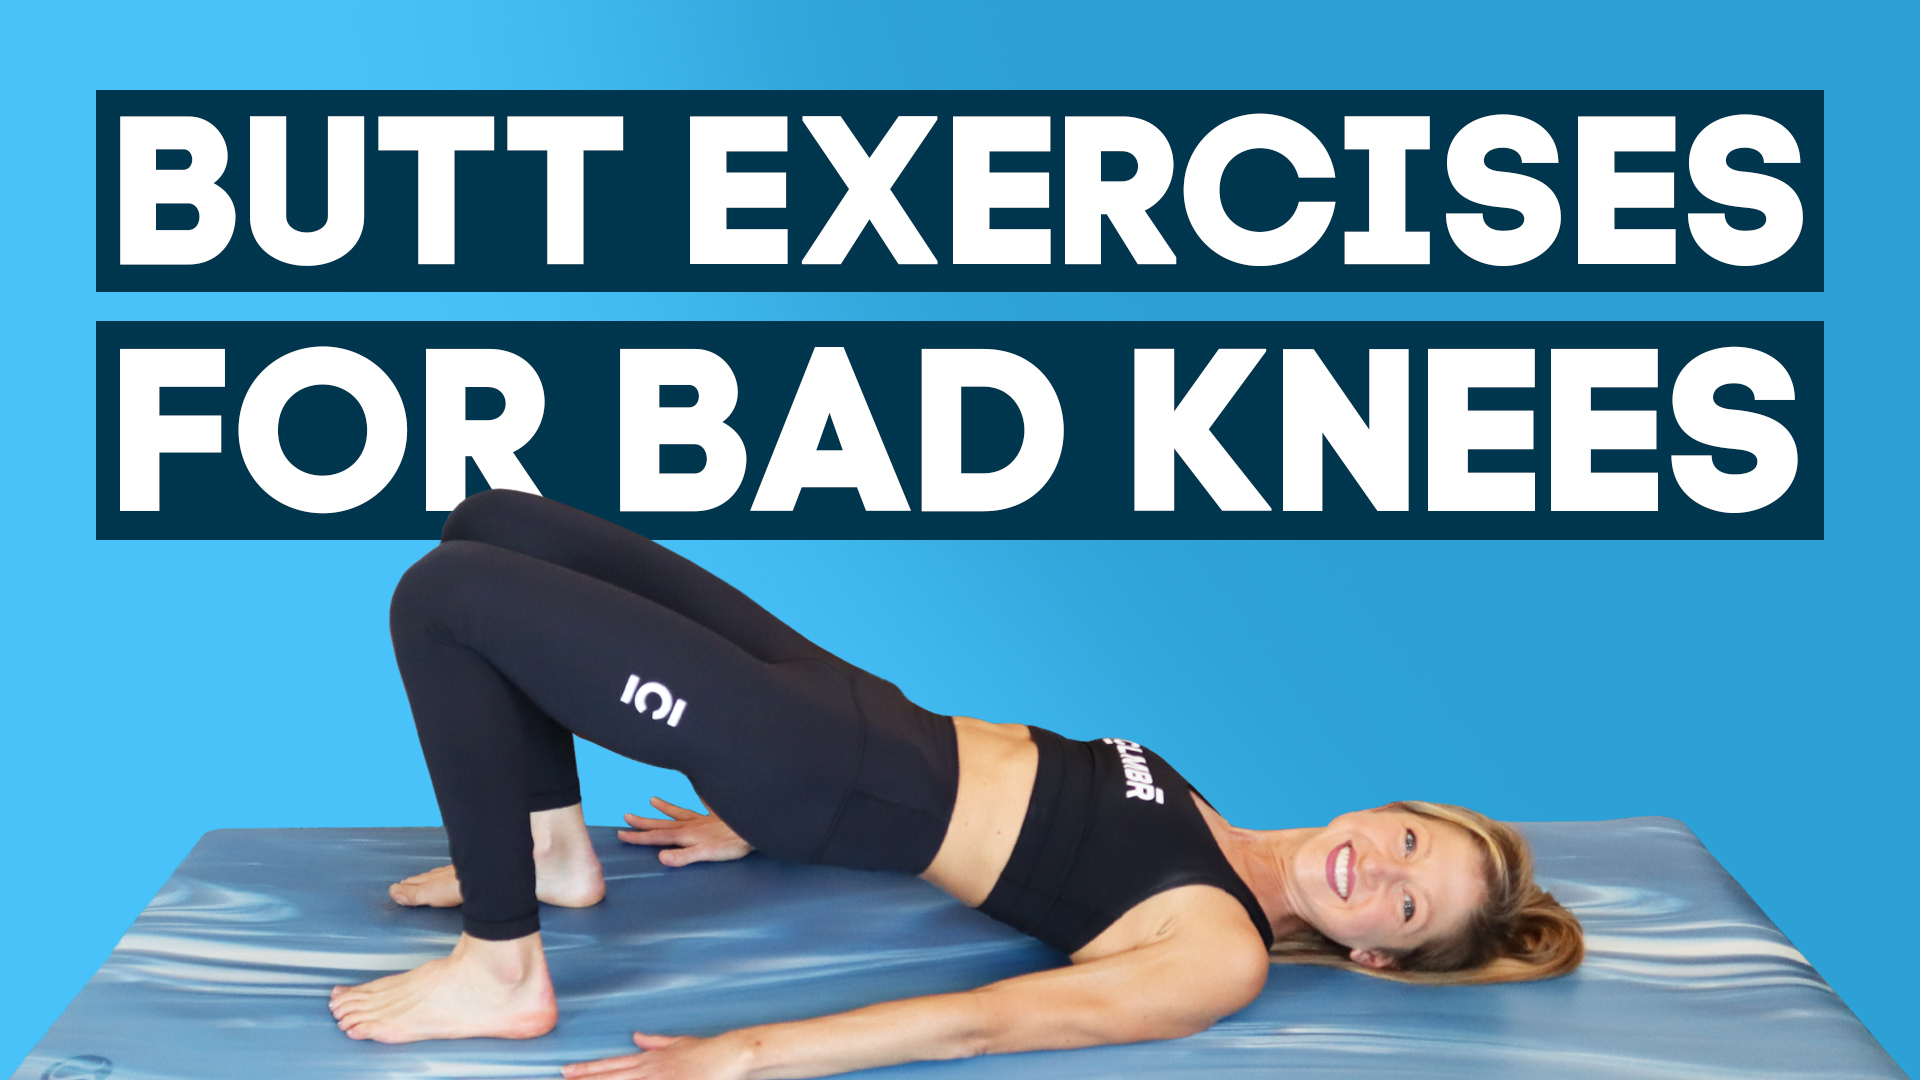 butt exercises bad knees